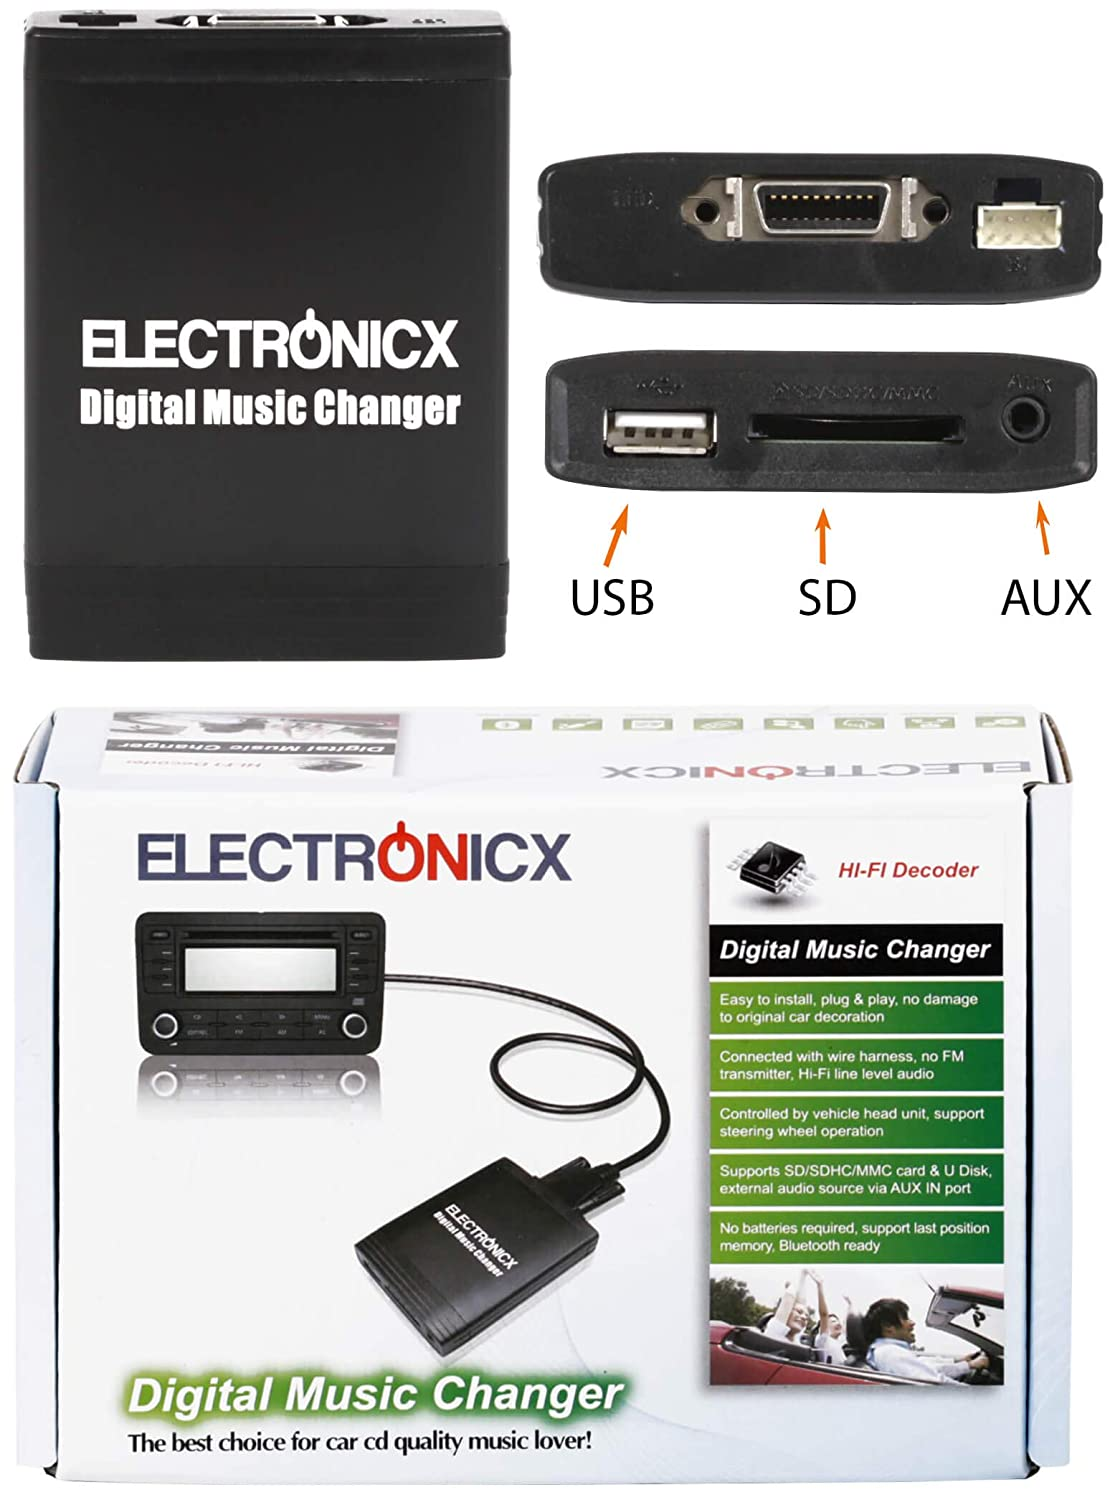 Adaptador de USB,MP3, AUX, SD, CD para Honda 2.4 Accord Civic Jazz FR-V S2000 Fit NSX: Amazon.es: Electrónica